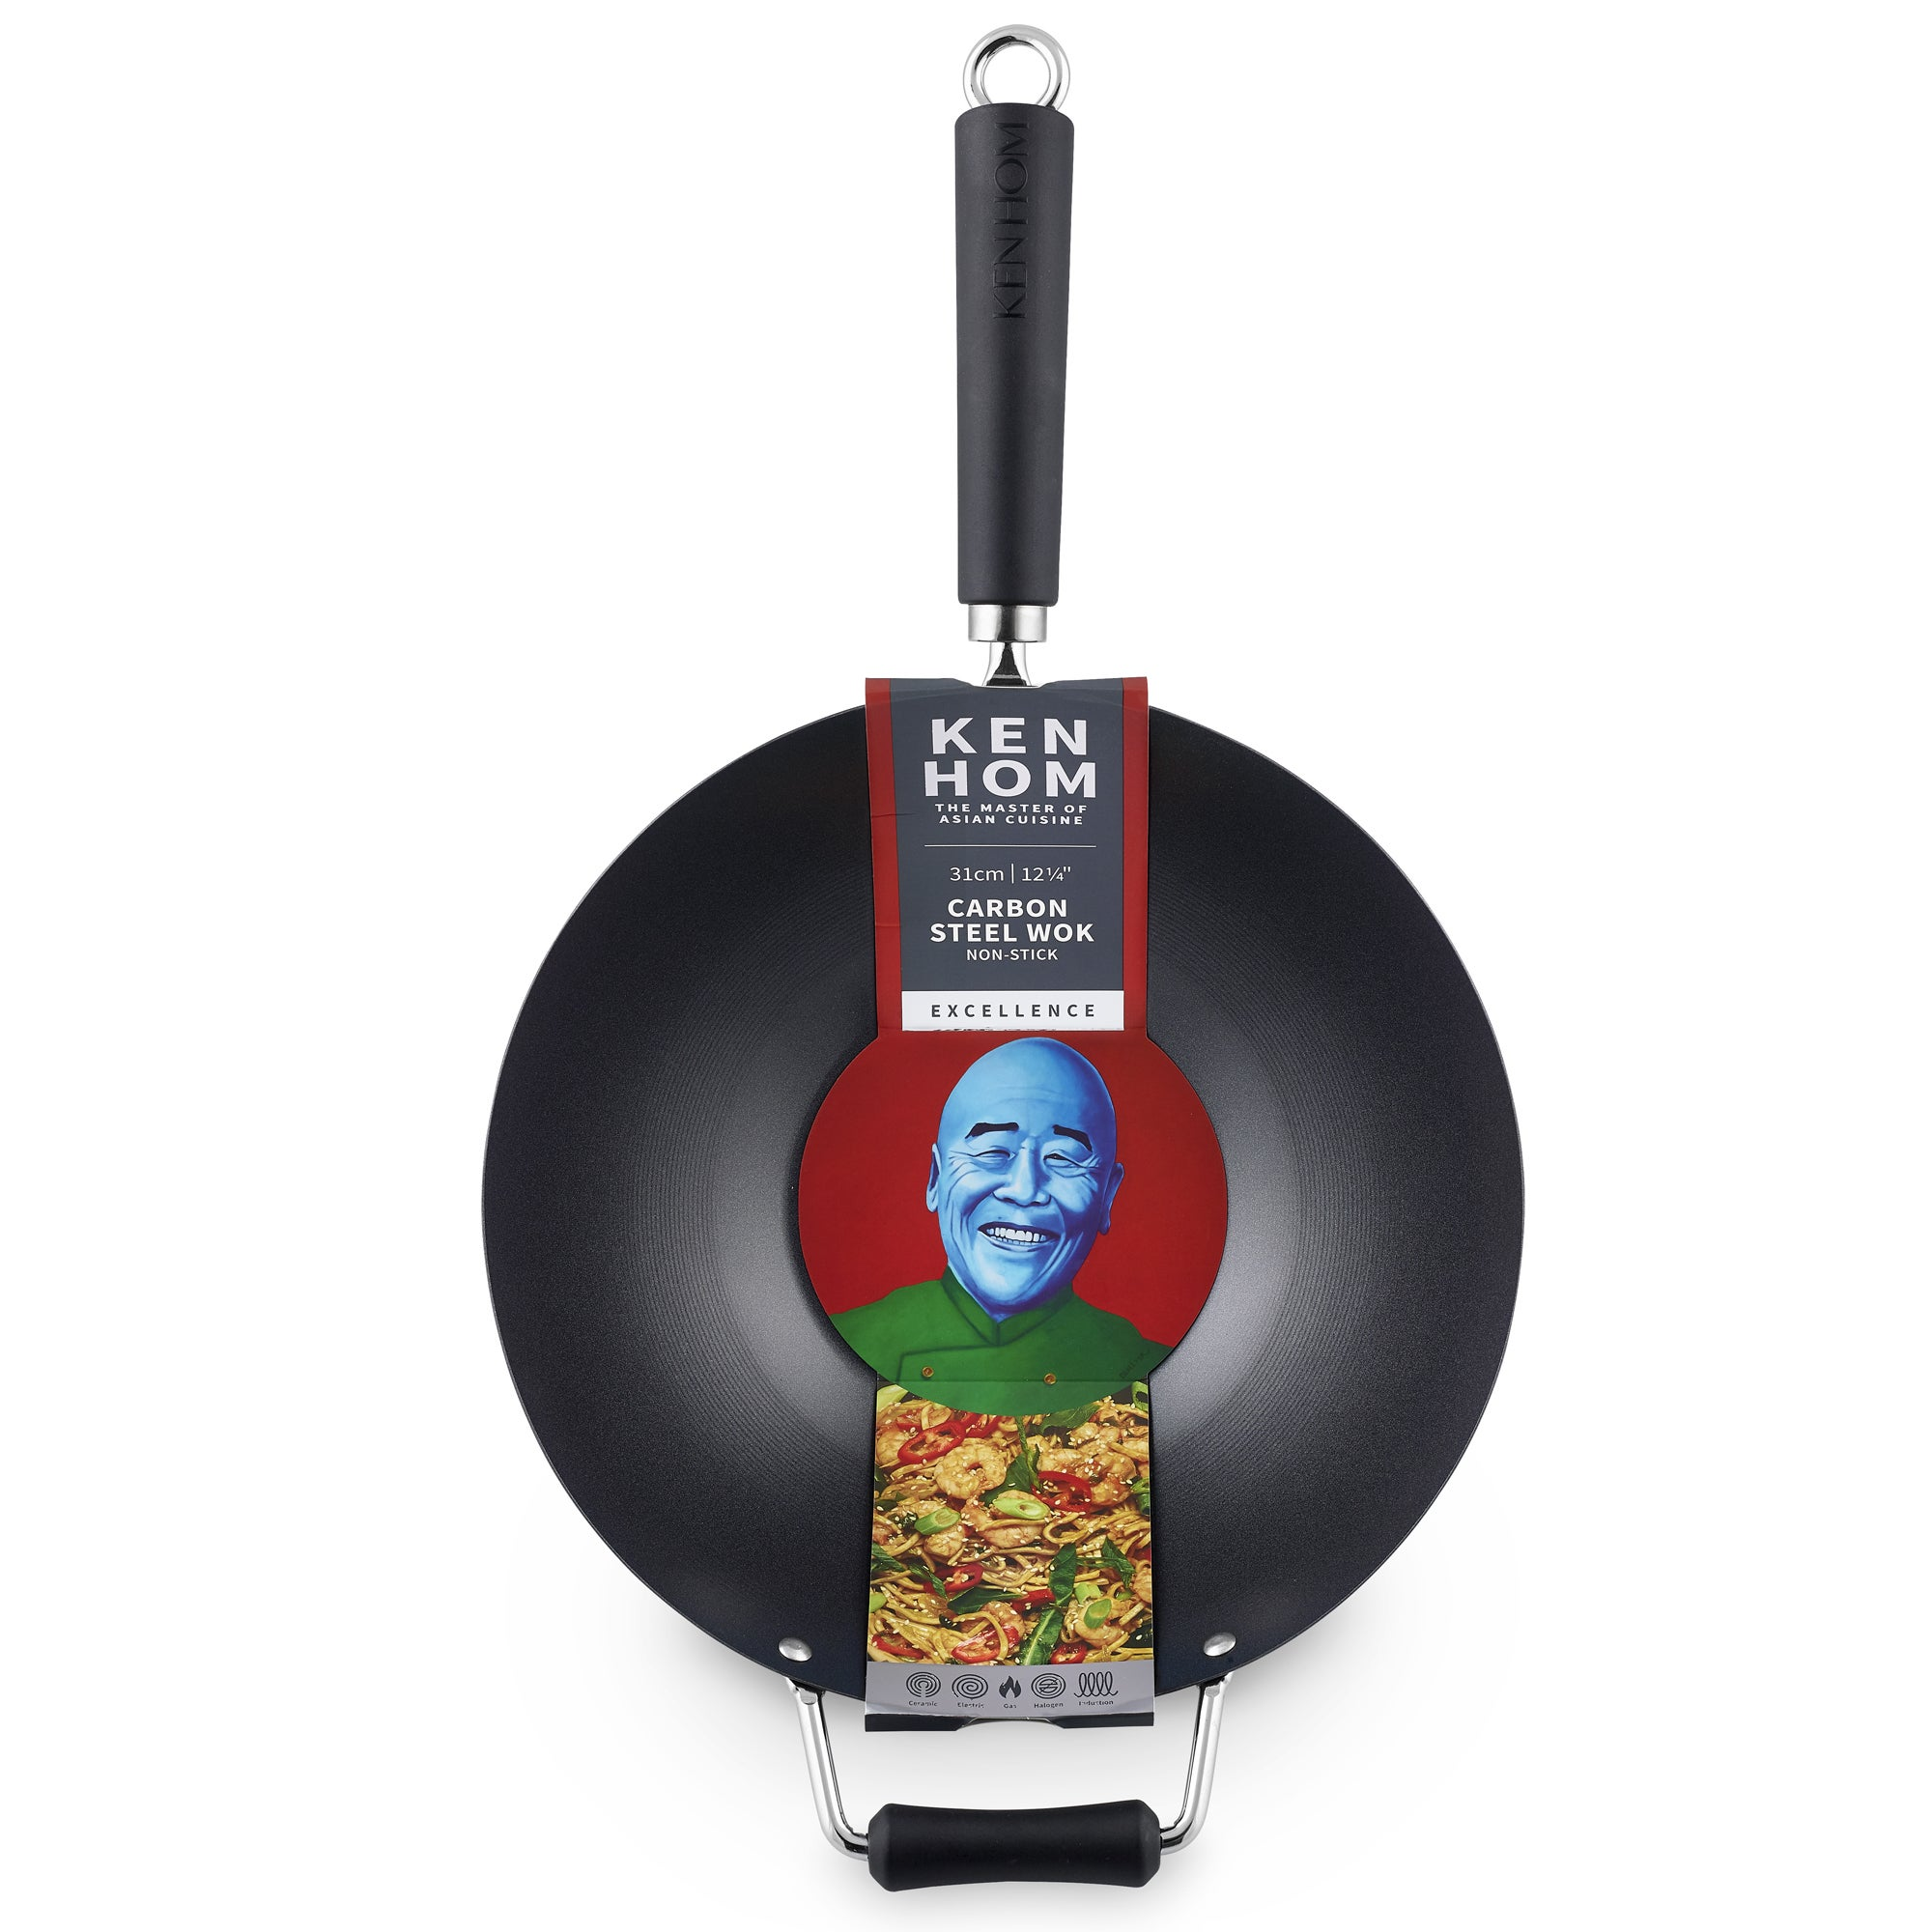 Ken Hom 32cm Performance Wok Black